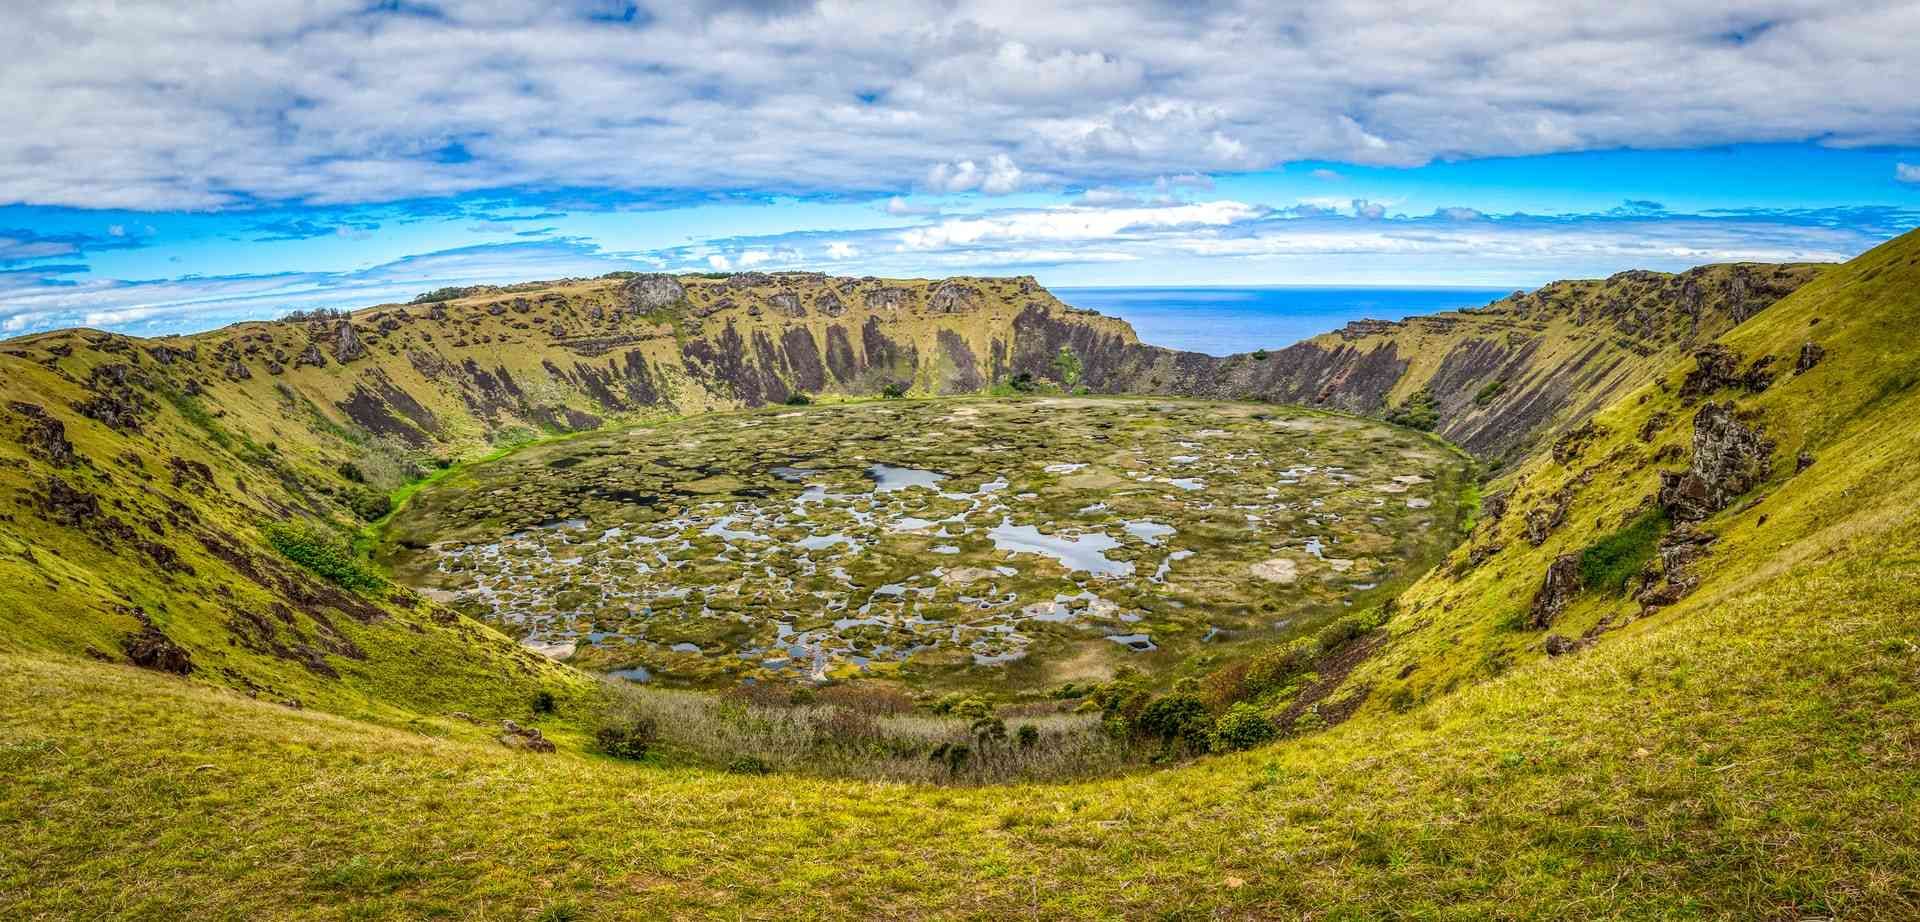 Rano Kau, Volcanco on Easter Island, Chile by Franz Nawrath/Unsplash